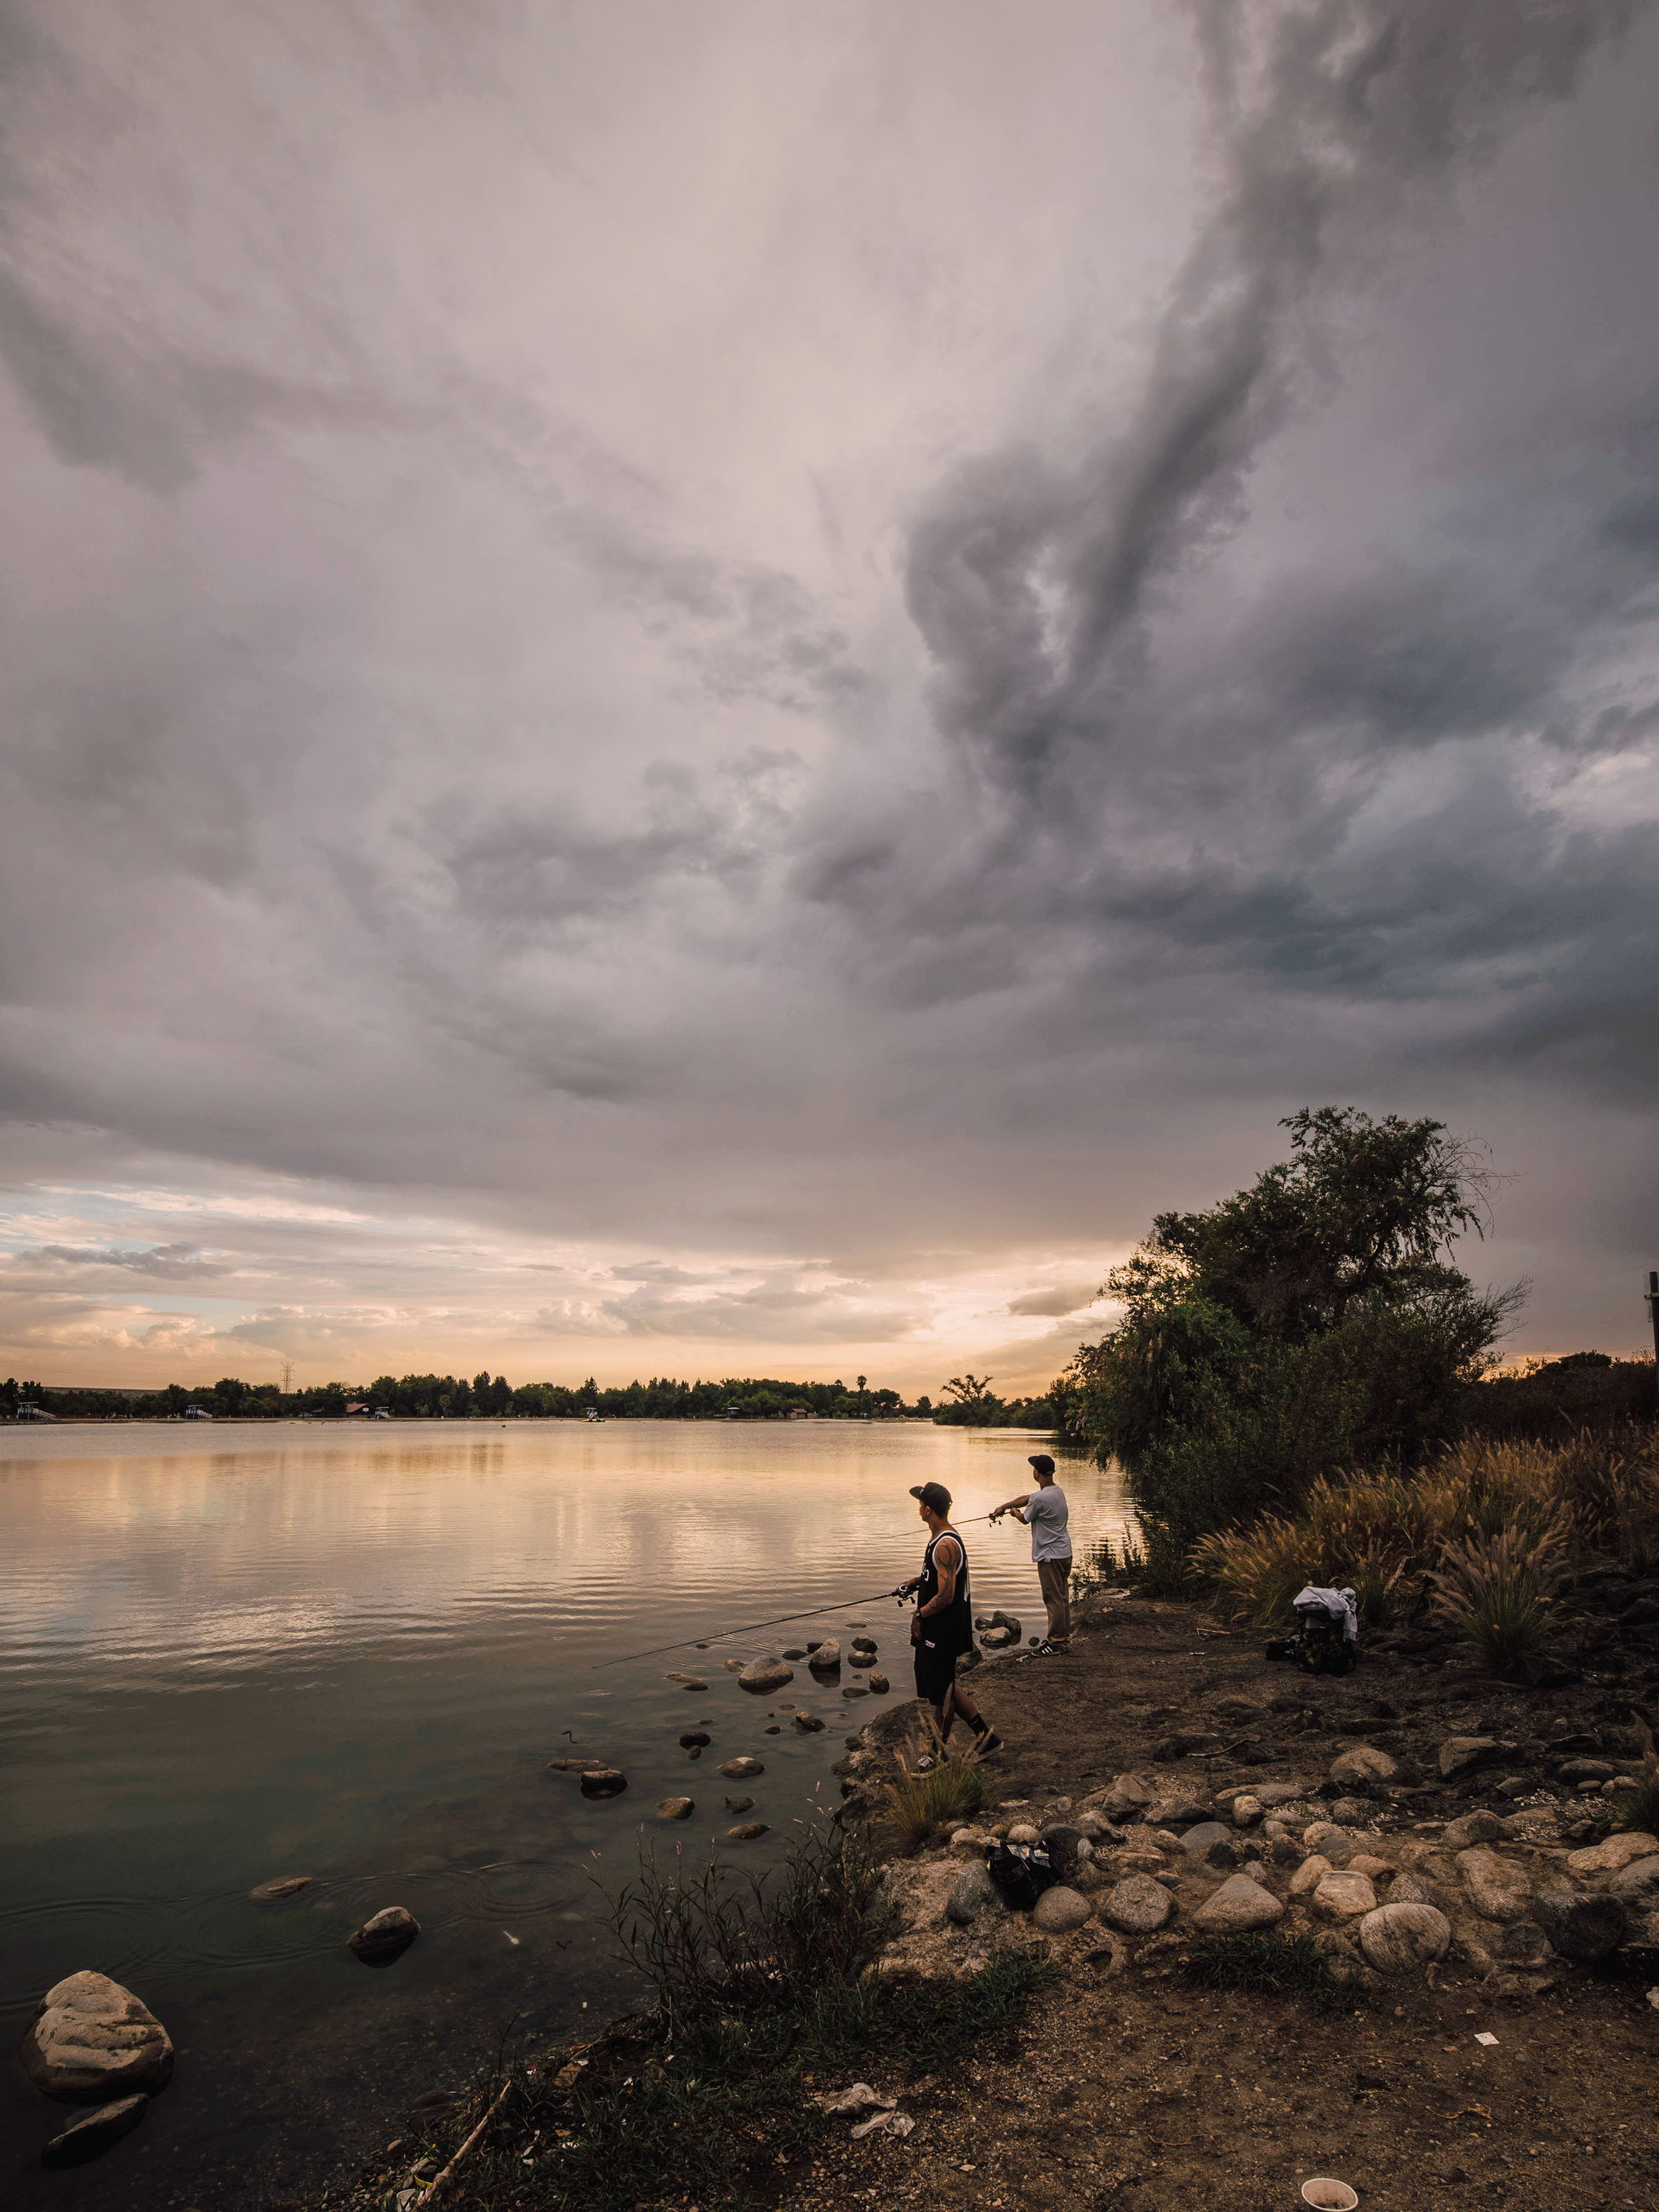 cloud - sky, water, sky, nature, beauty in nature, real people, tranquil scene, tranquility, scenics, sunset, outdoors, full length, tree, one person, standing, lake, men, women, day, people